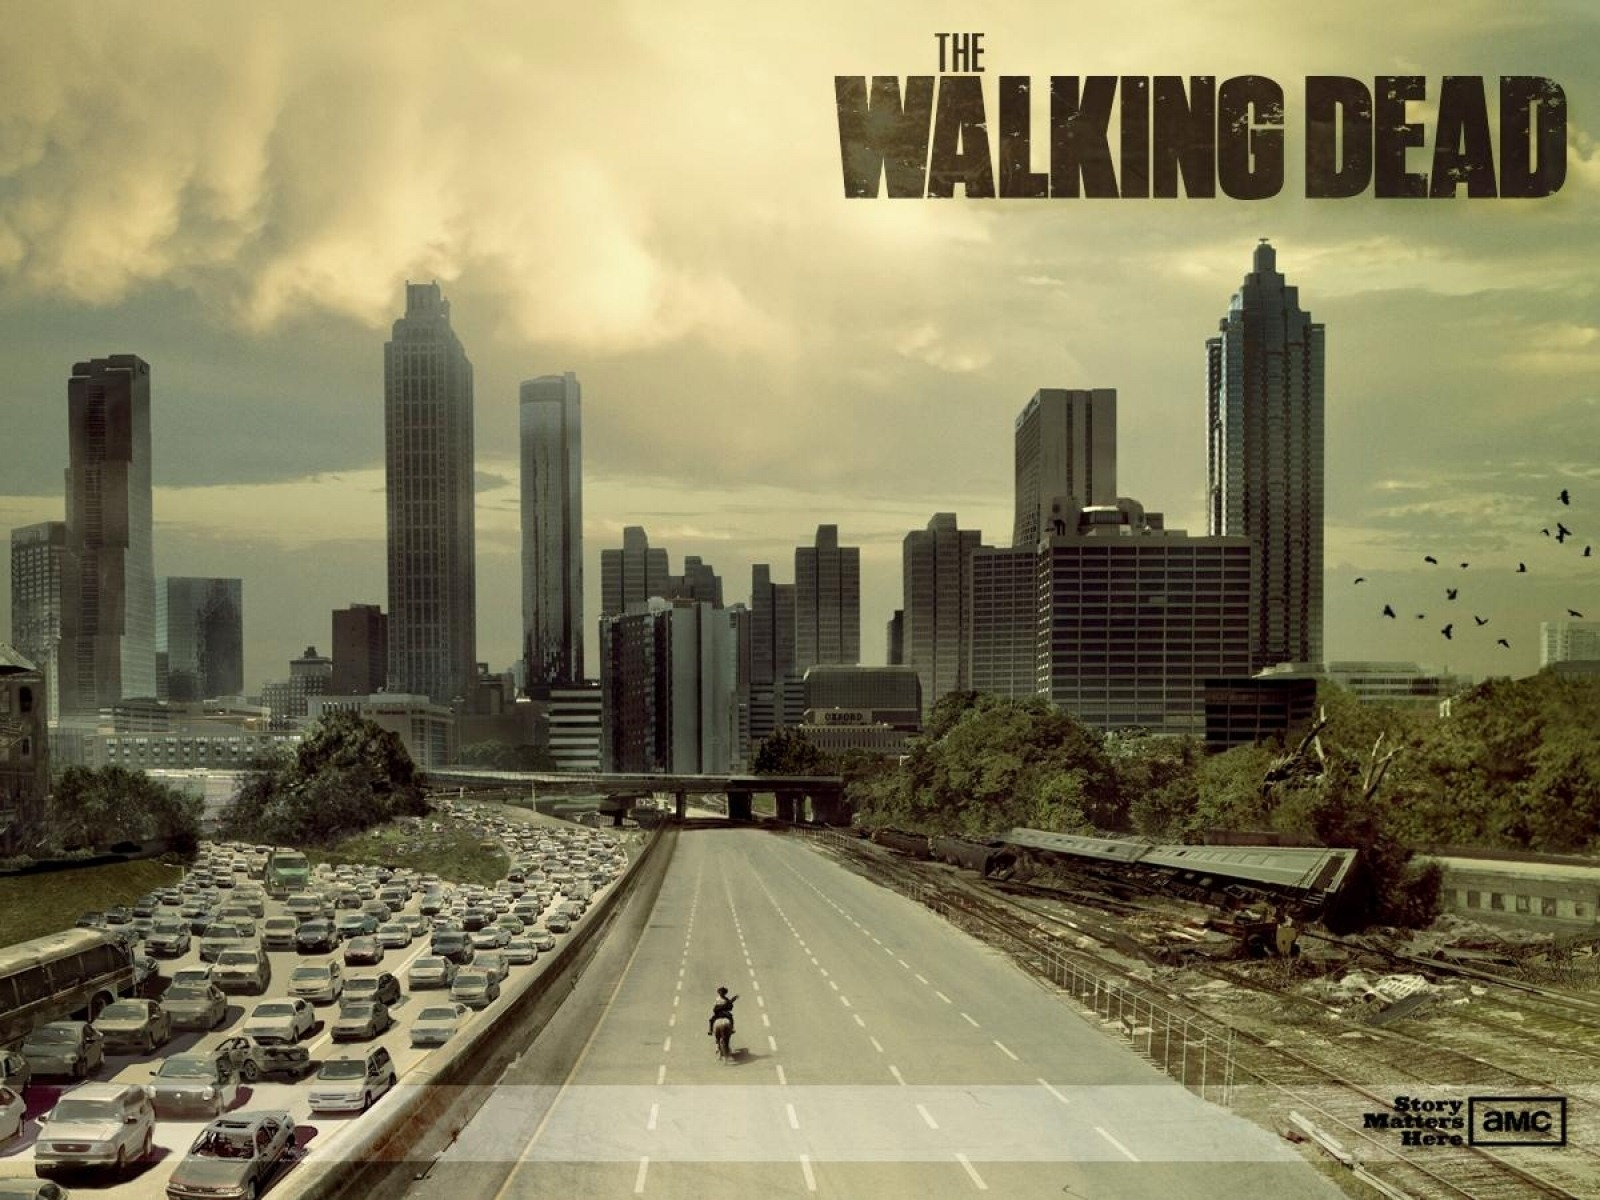 The Walking Dead American Tv Series Wallpaper 16 1600x1200